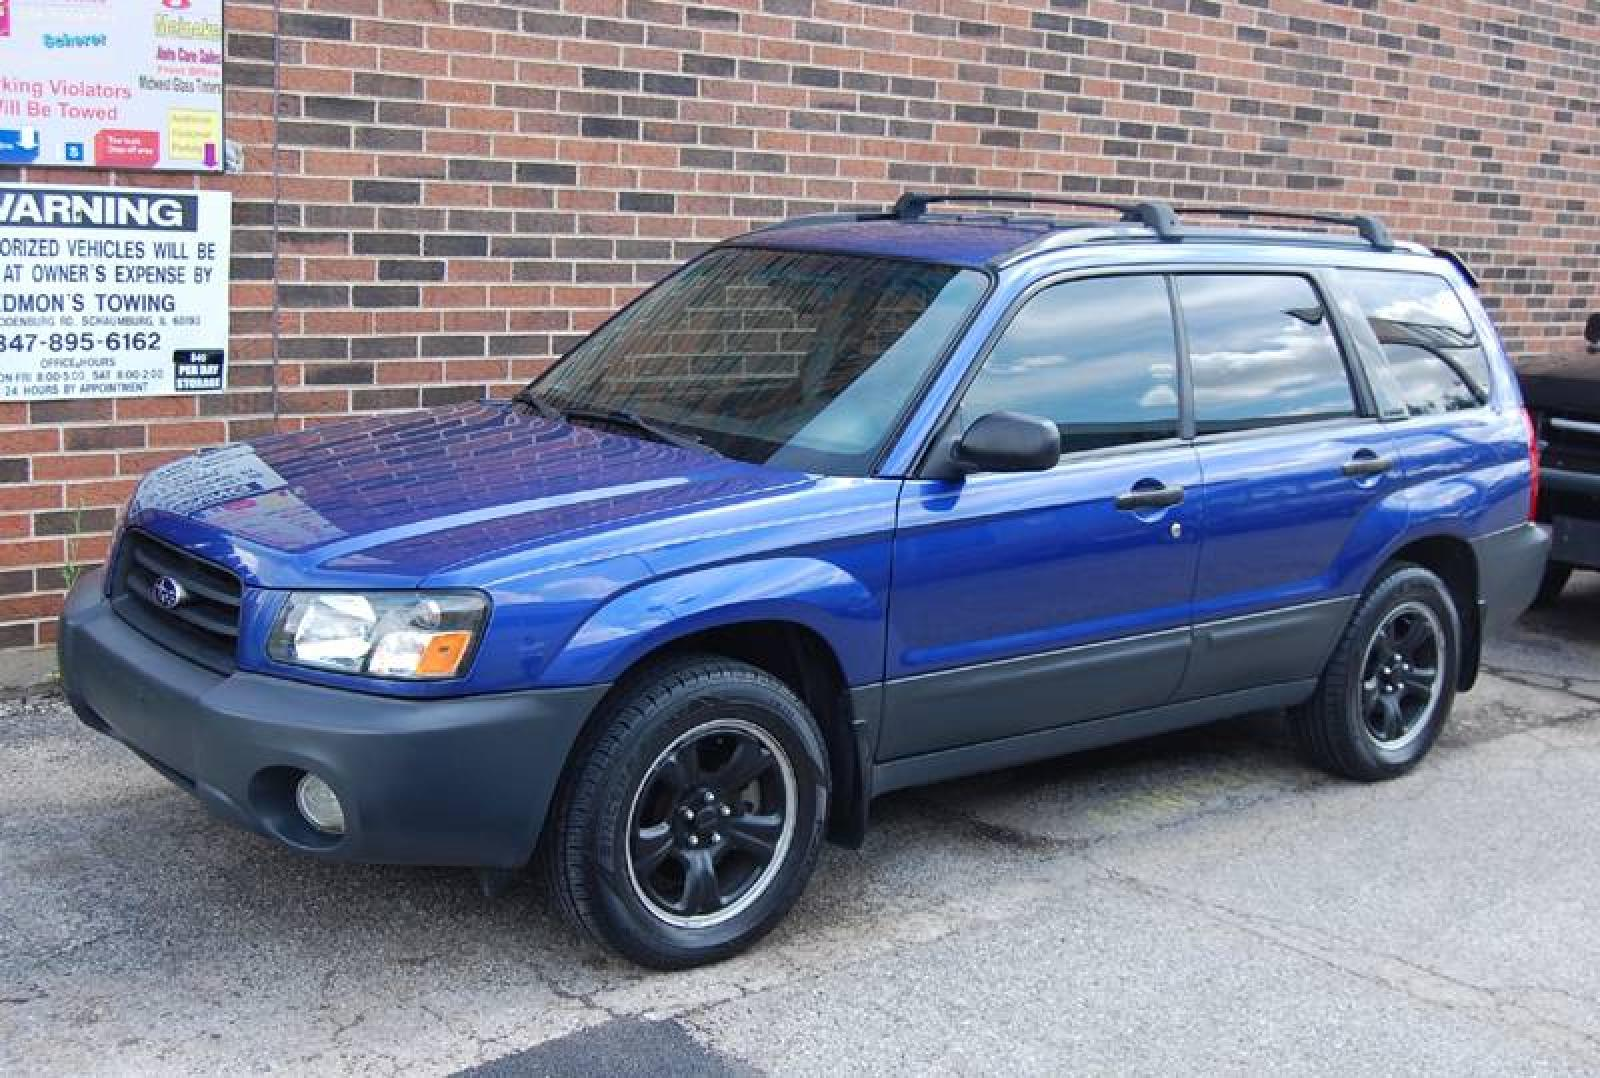 2003 subaru forester information and photos zombiedrive. Black Bedroom Furniture Sets. Home Design Ideas